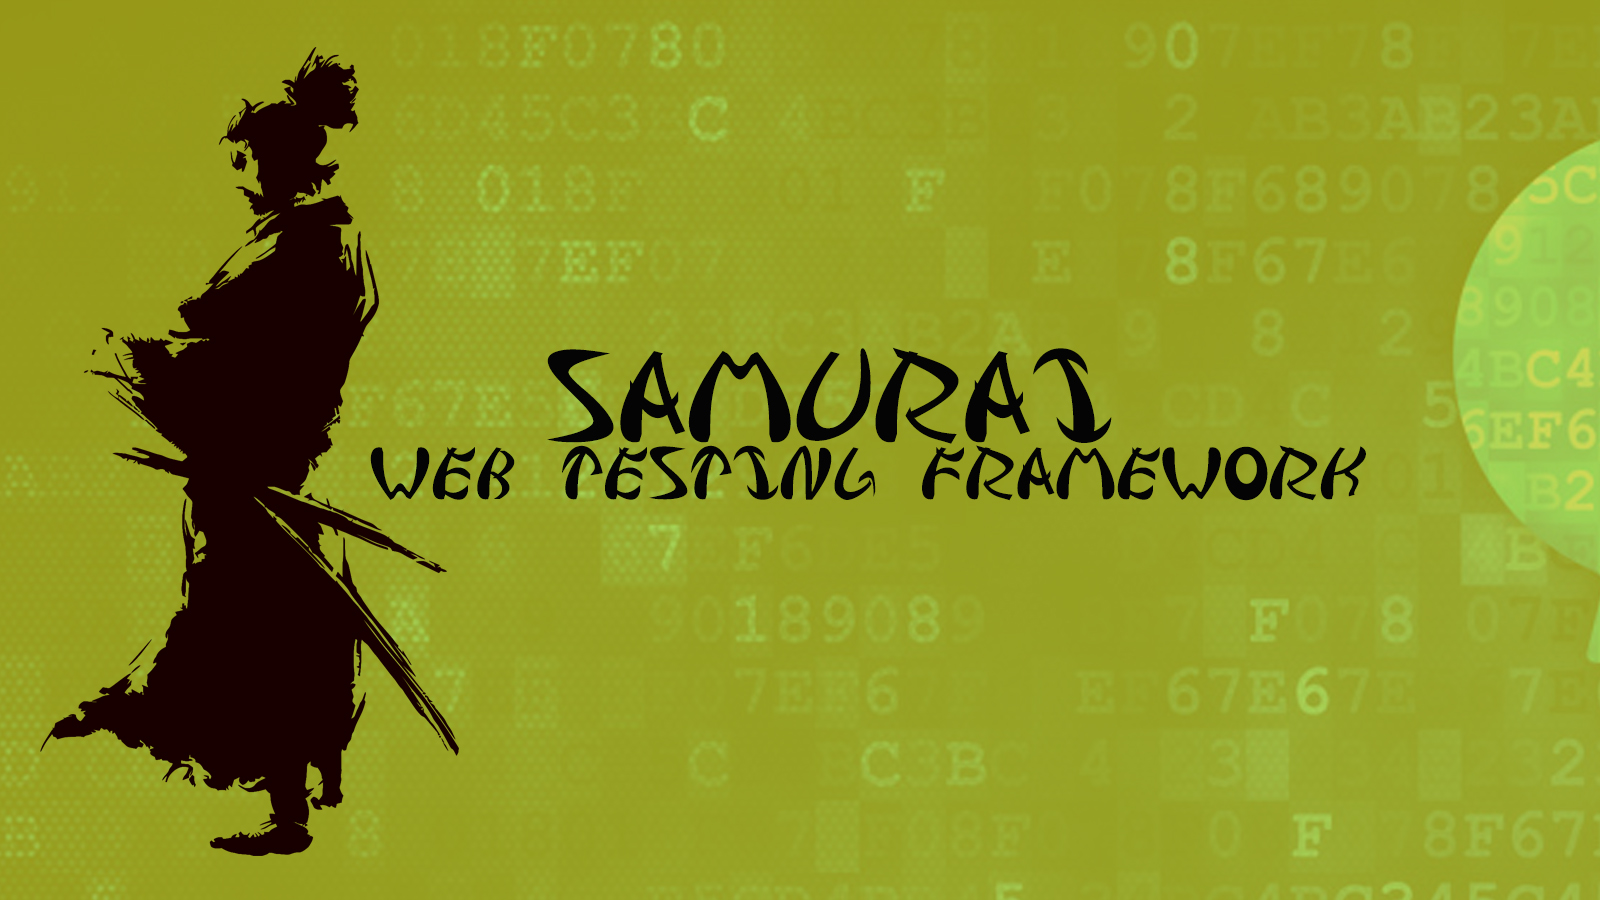 Samurai Web Testing Framework -  A Virtual Machine Focused on Web Application Testing